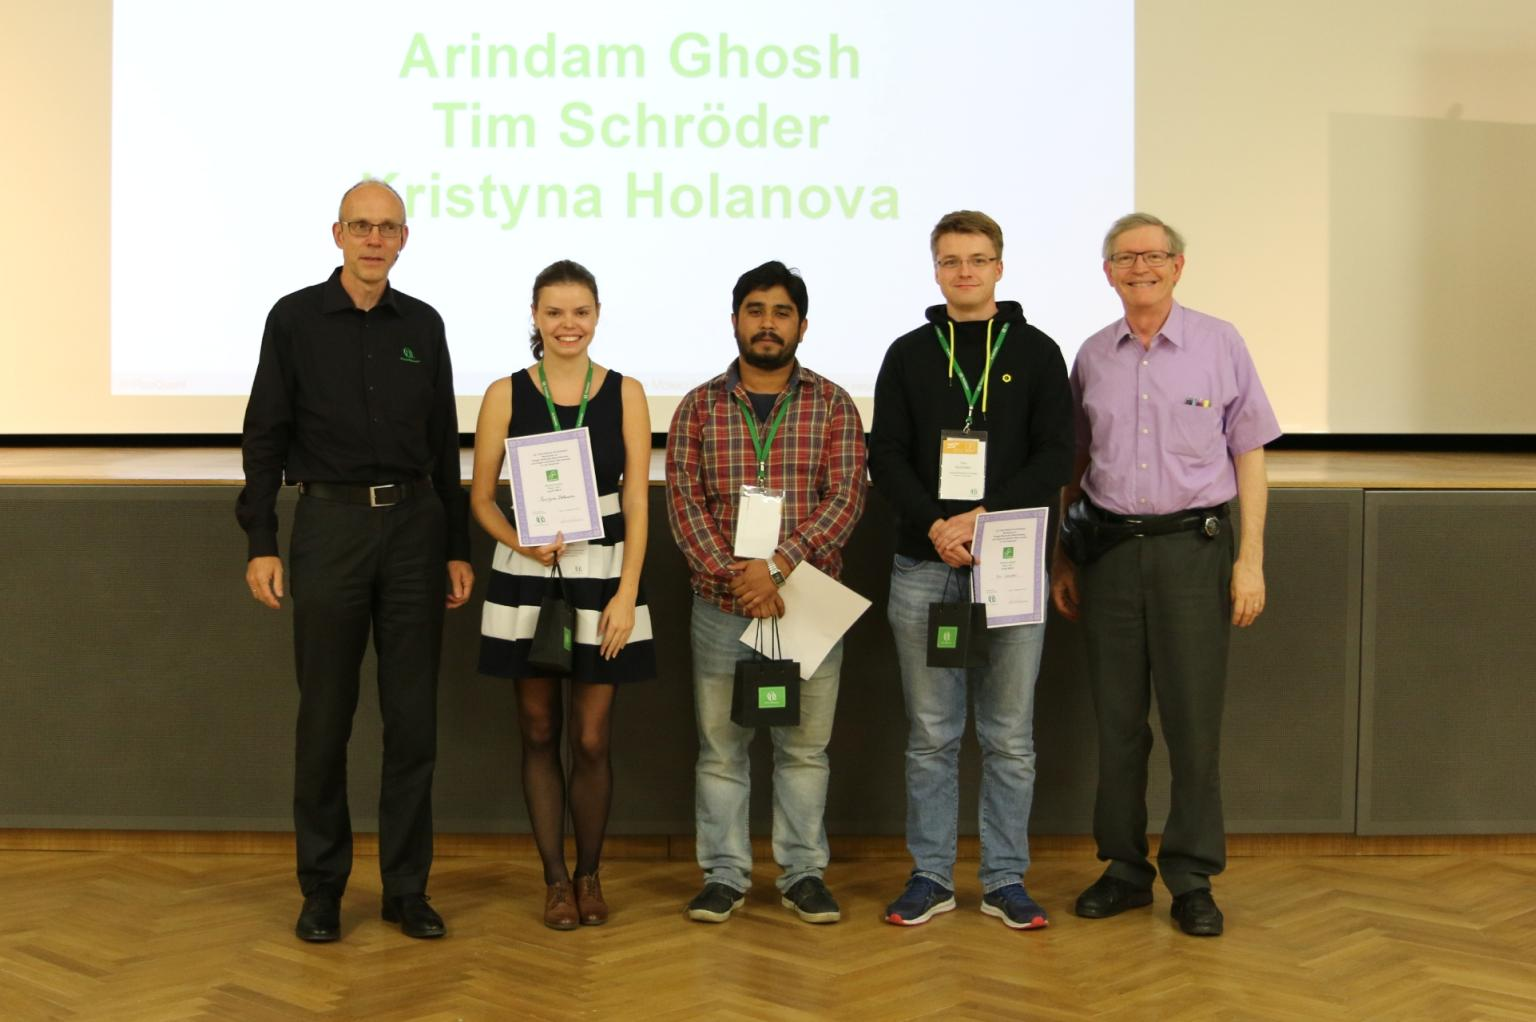 Congratulations to the winners of the student award 2019